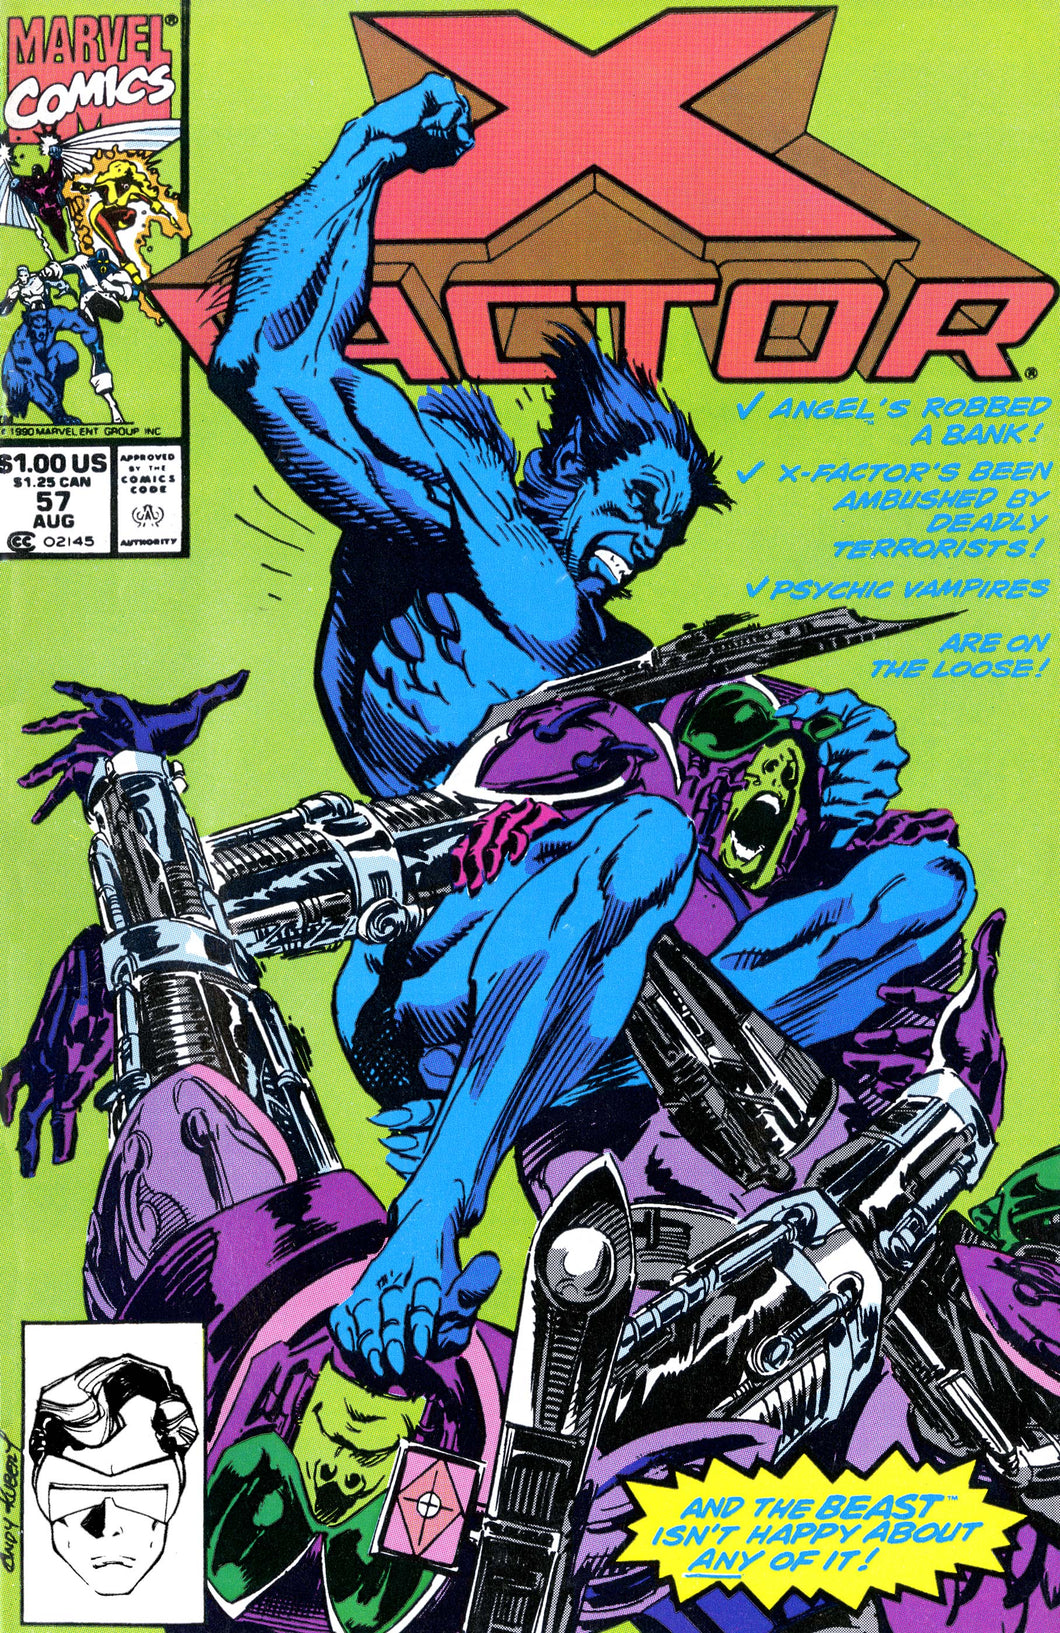 Marvel Comic - X Factor - #57 - Retro Treasure Leeds